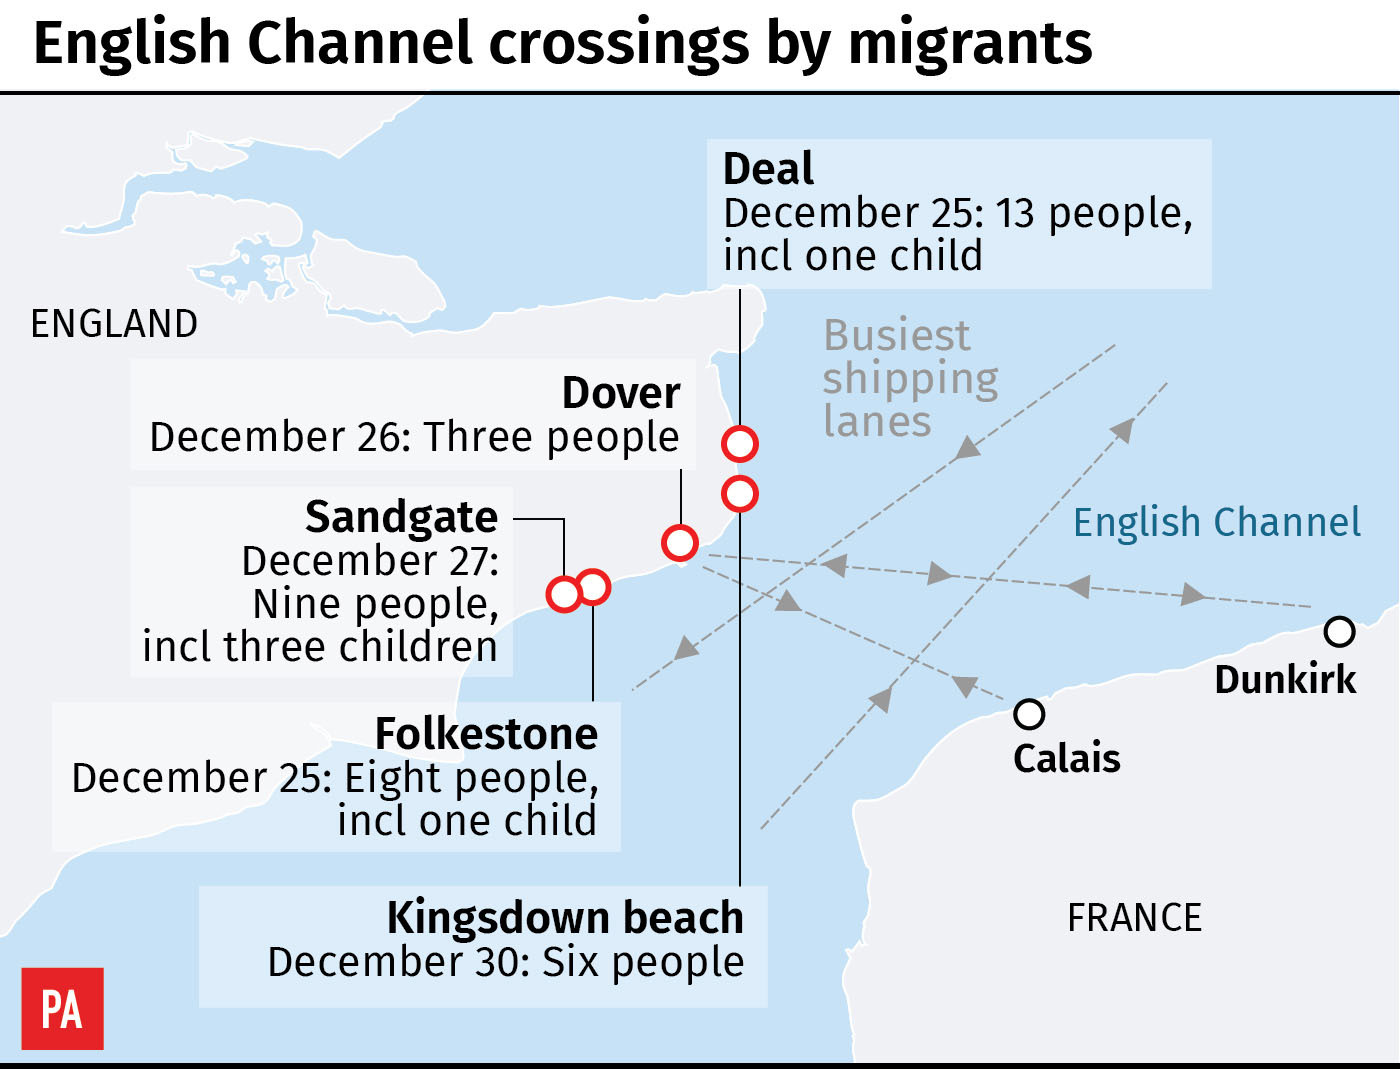 Two arrested on suspicion of smuggling migrants across English Channel into UK